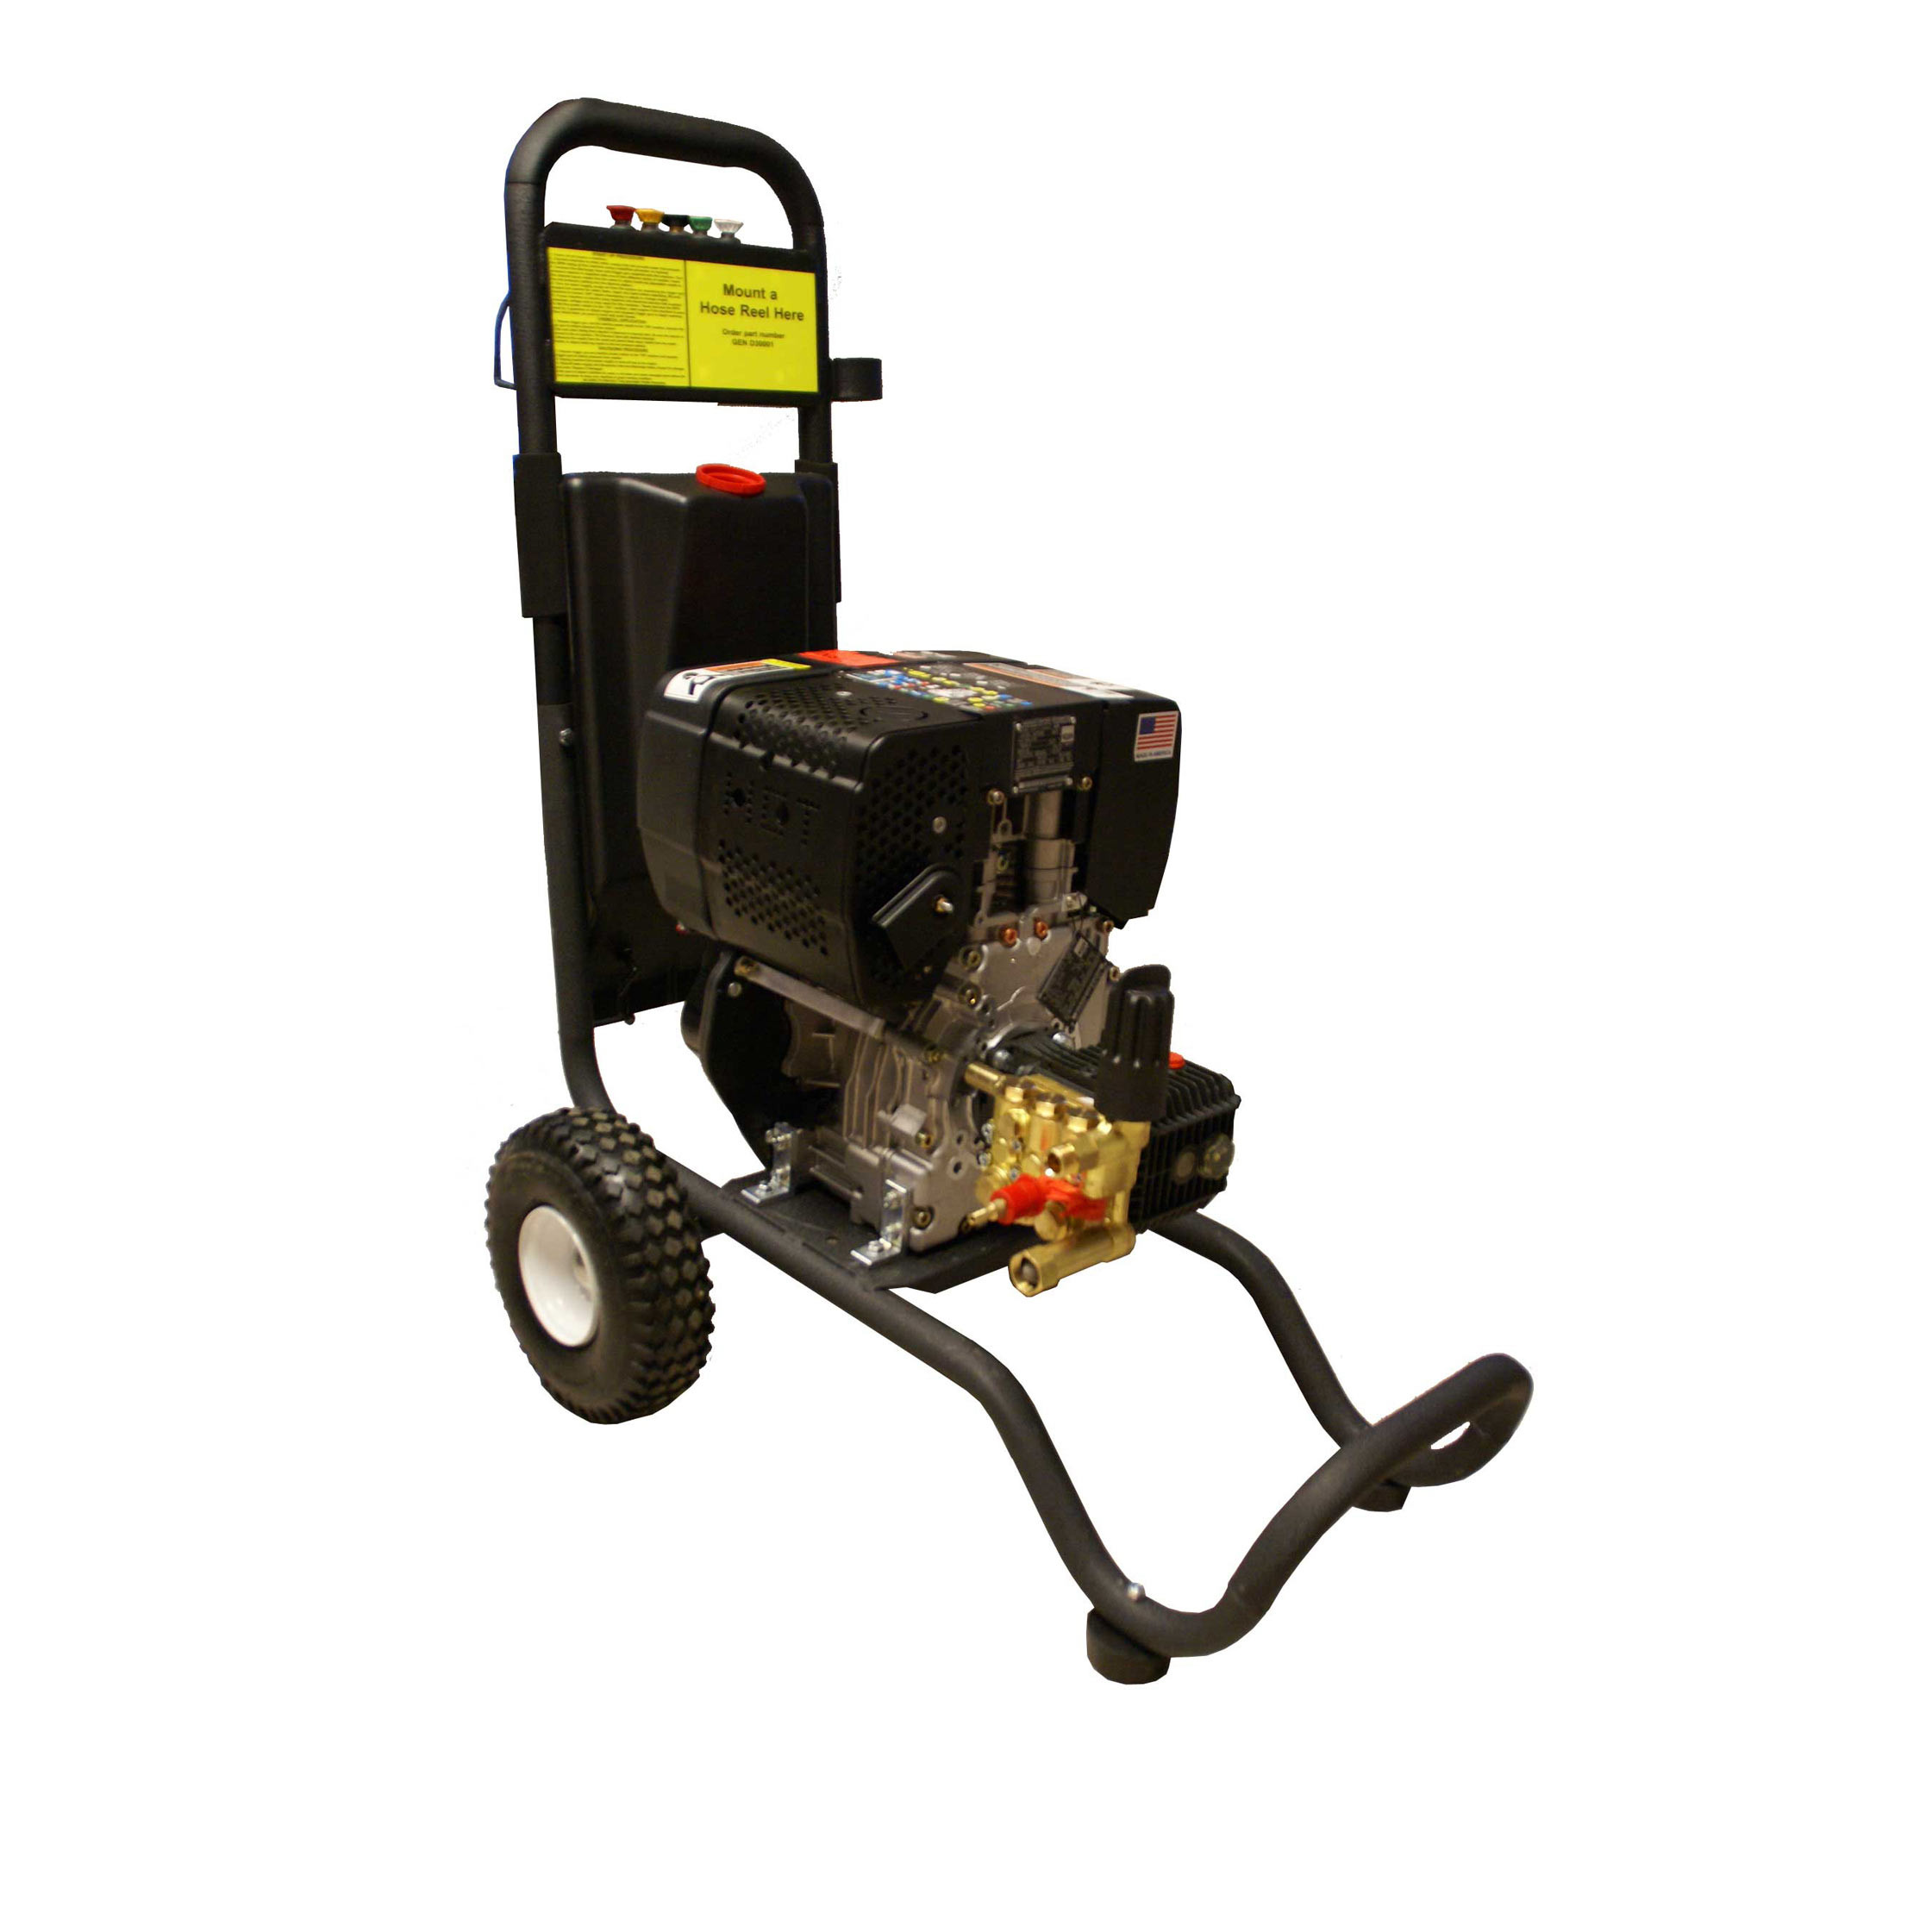 Diesel powered concrete power washer for Best pressure washer to clean concrete